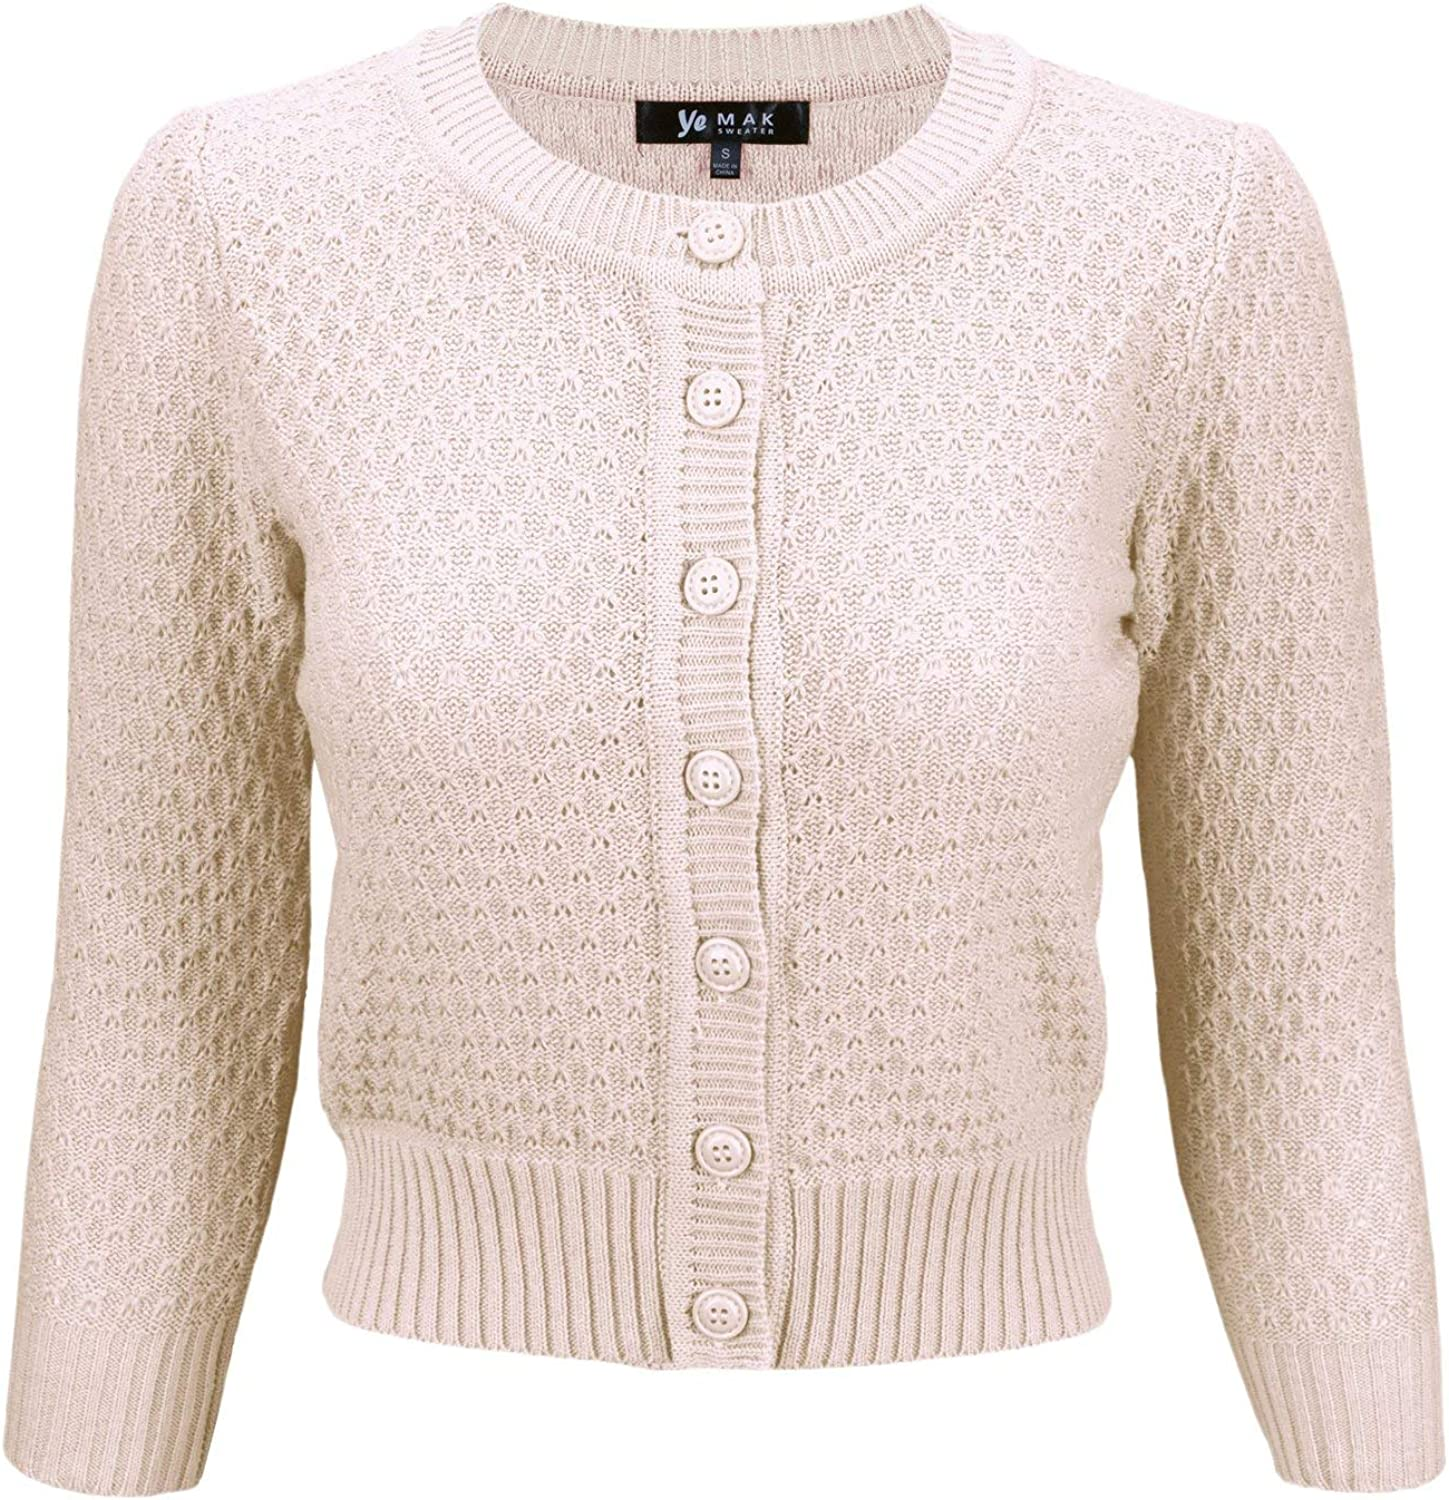 YEMAK Women's 3/4 Sleeve Crewneck Cropped Button Down Knit Cardigan Sweater (S-3X)